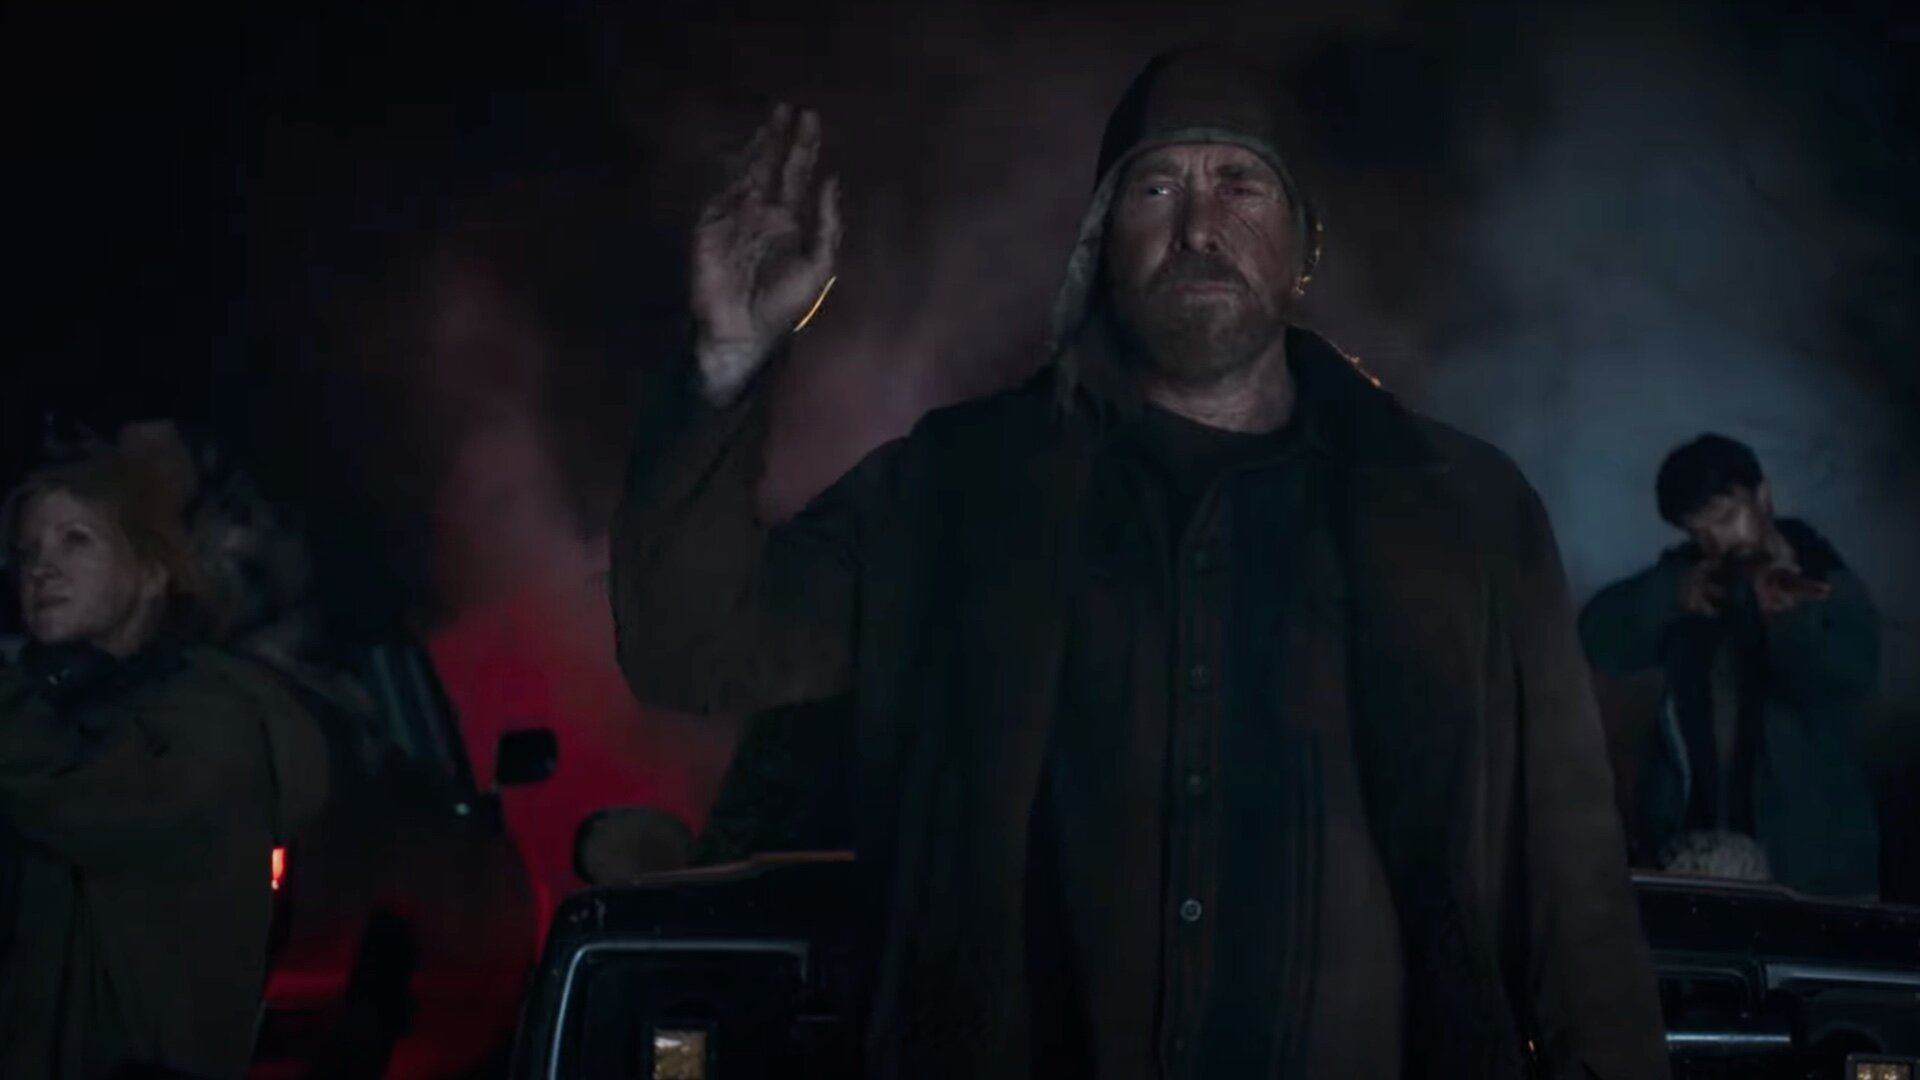 trailer for the coal mine monster movie the devil below starring will patton